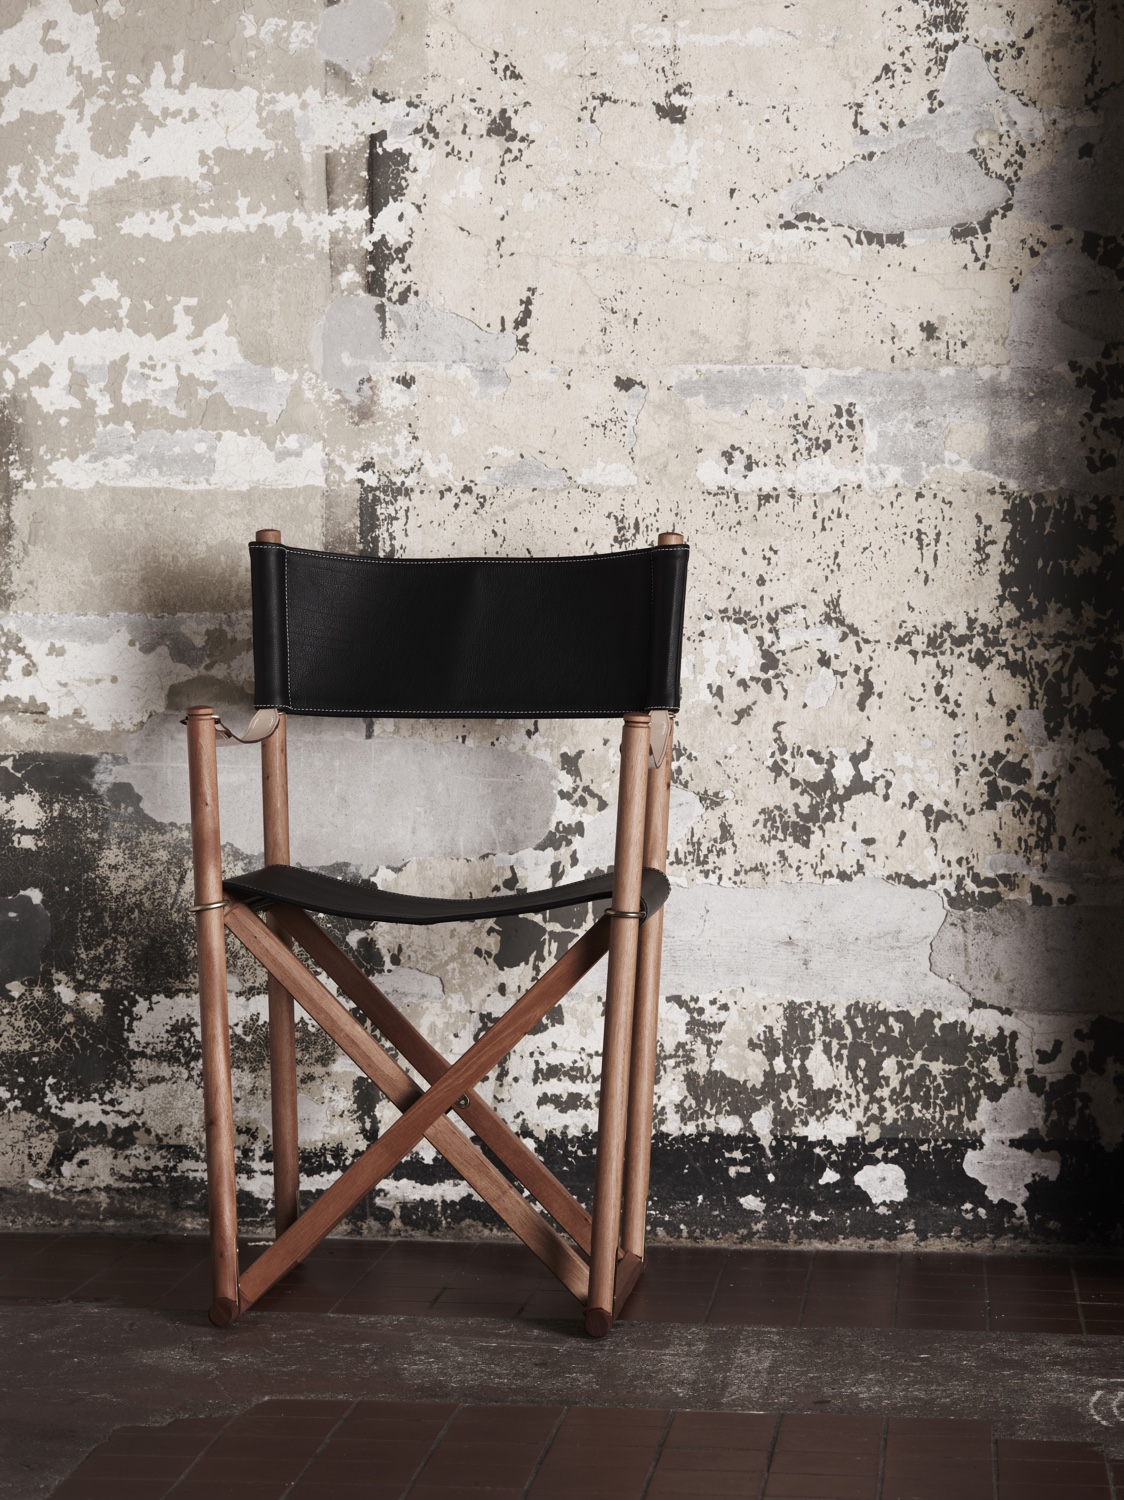 Mogens Koch's Folding Chair. Seat and backrest pictured in leather. Image courtesy of Carl Hansen & Søn.